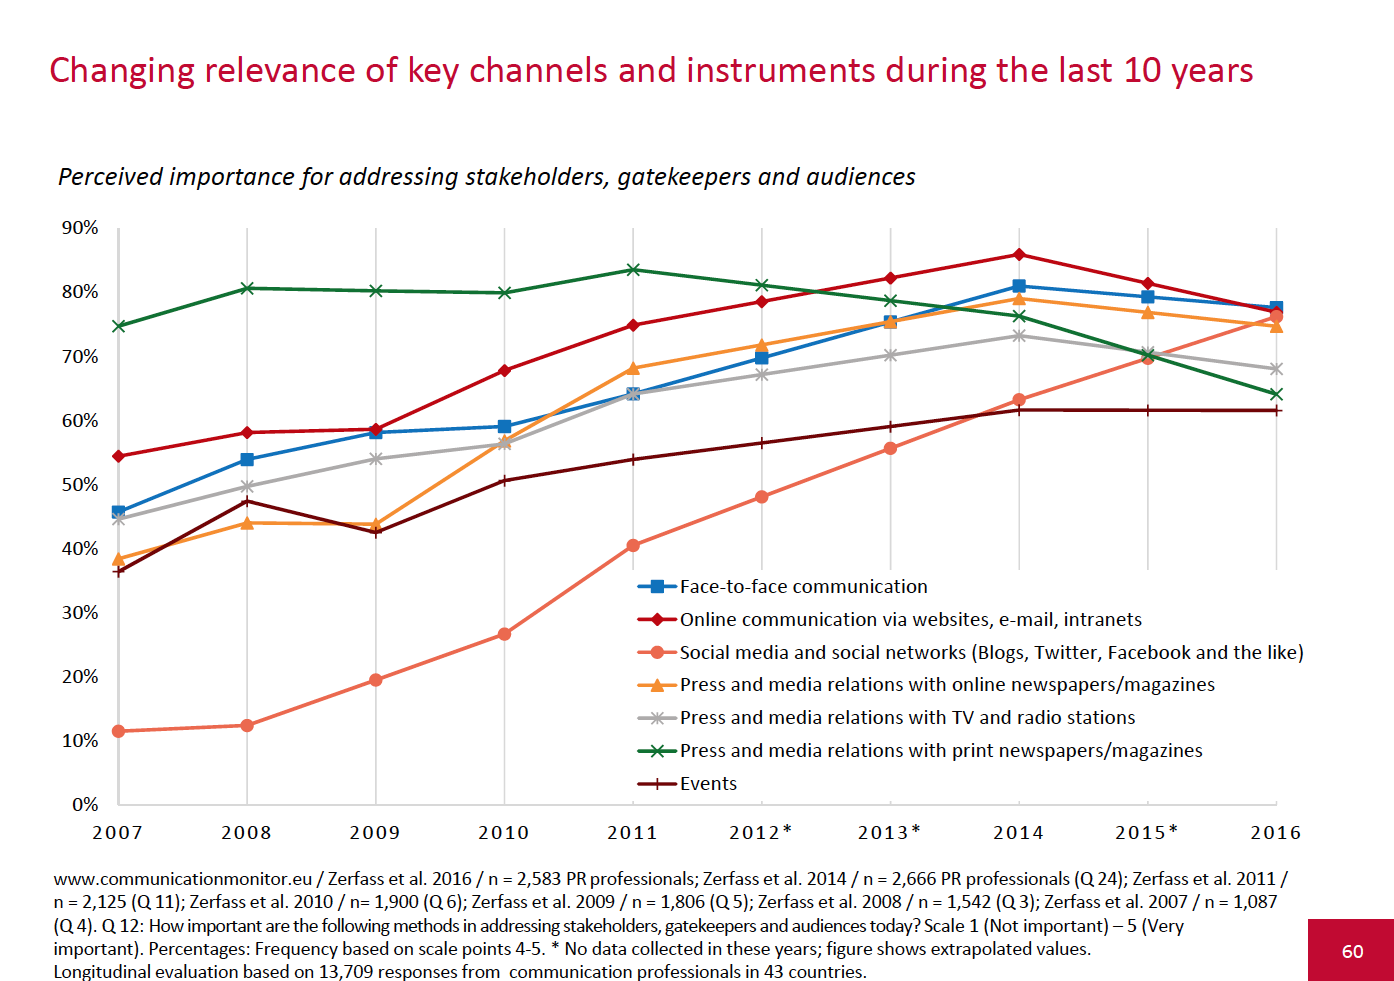 European-Communication-Monitor-2016-Corporate-Communications-changing-relevance-of-key-channels-and-instruments-during-the-last-10-years